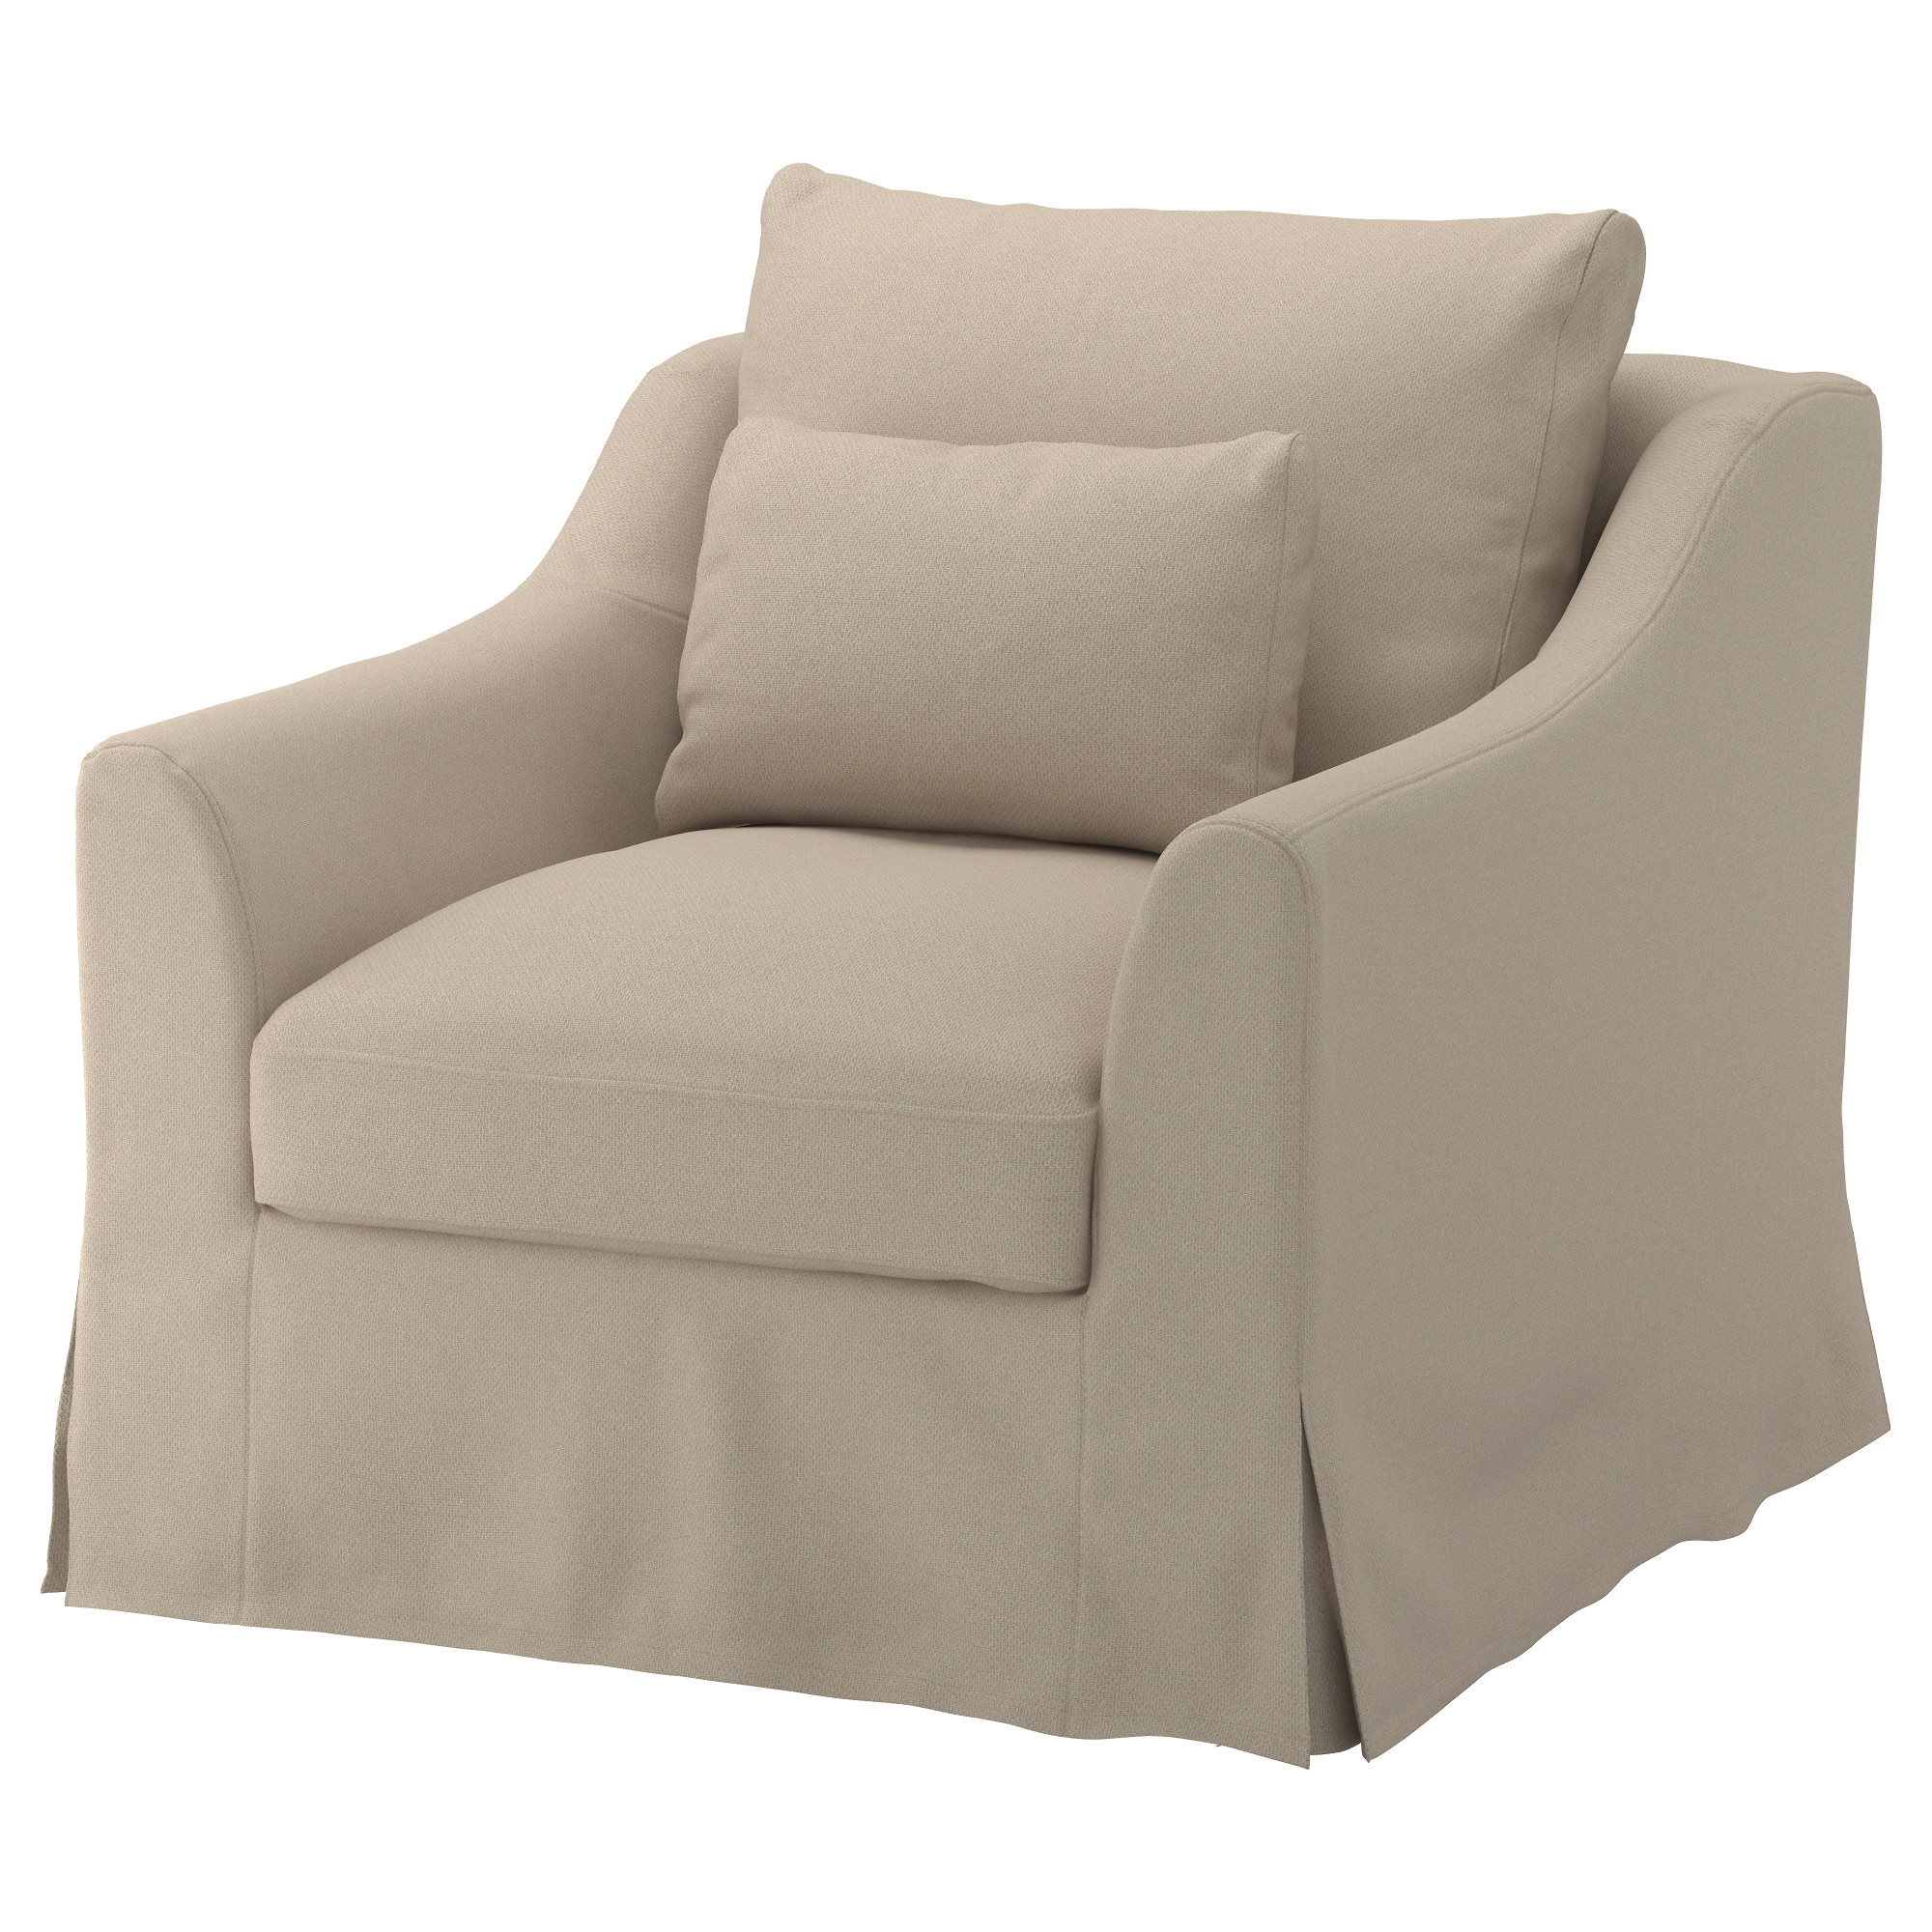 design ikea latest amp sleeper beautiful chair modern sectional with sofa fabric home sofas contemporary inspiration